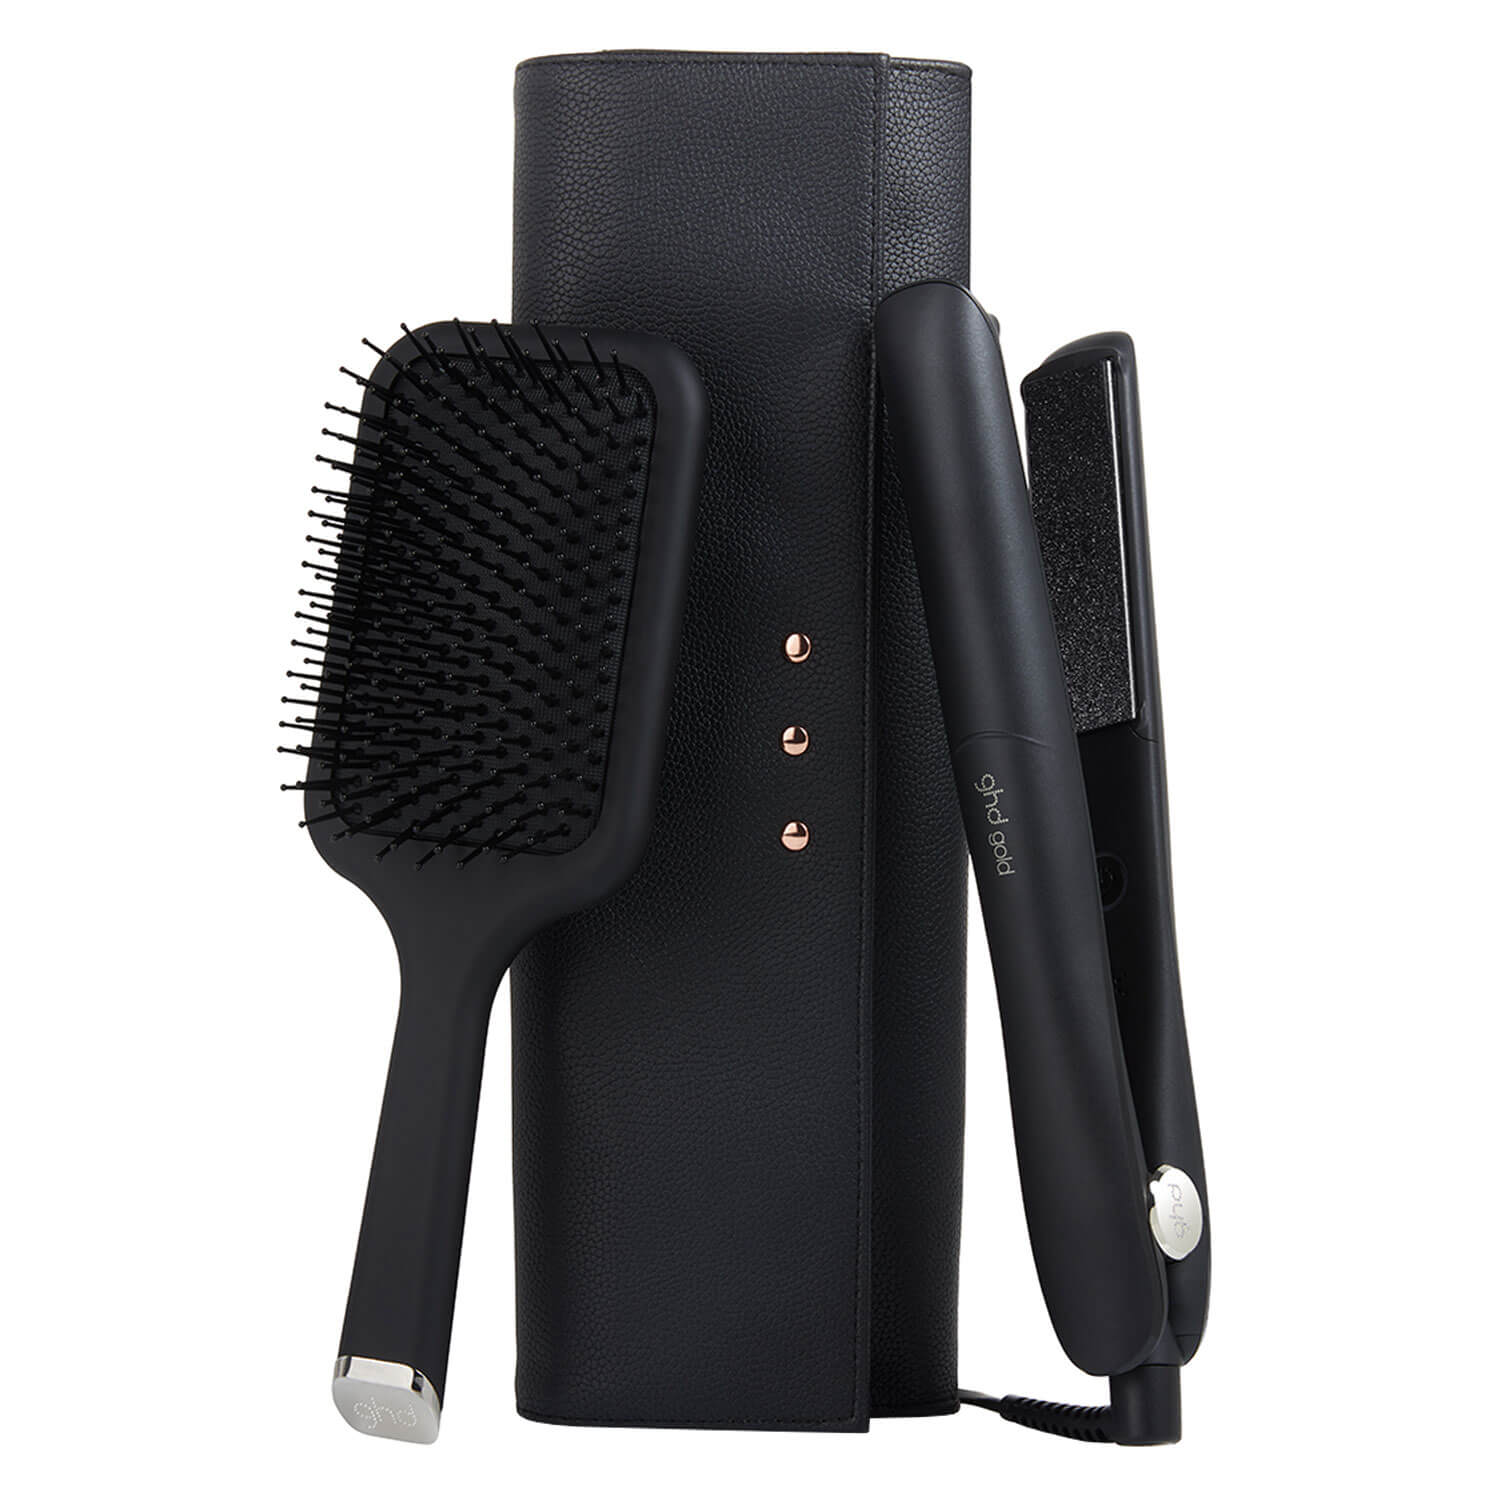 ghd Tools - Gold Professional Iconic Styler & Paddle Brush Set -